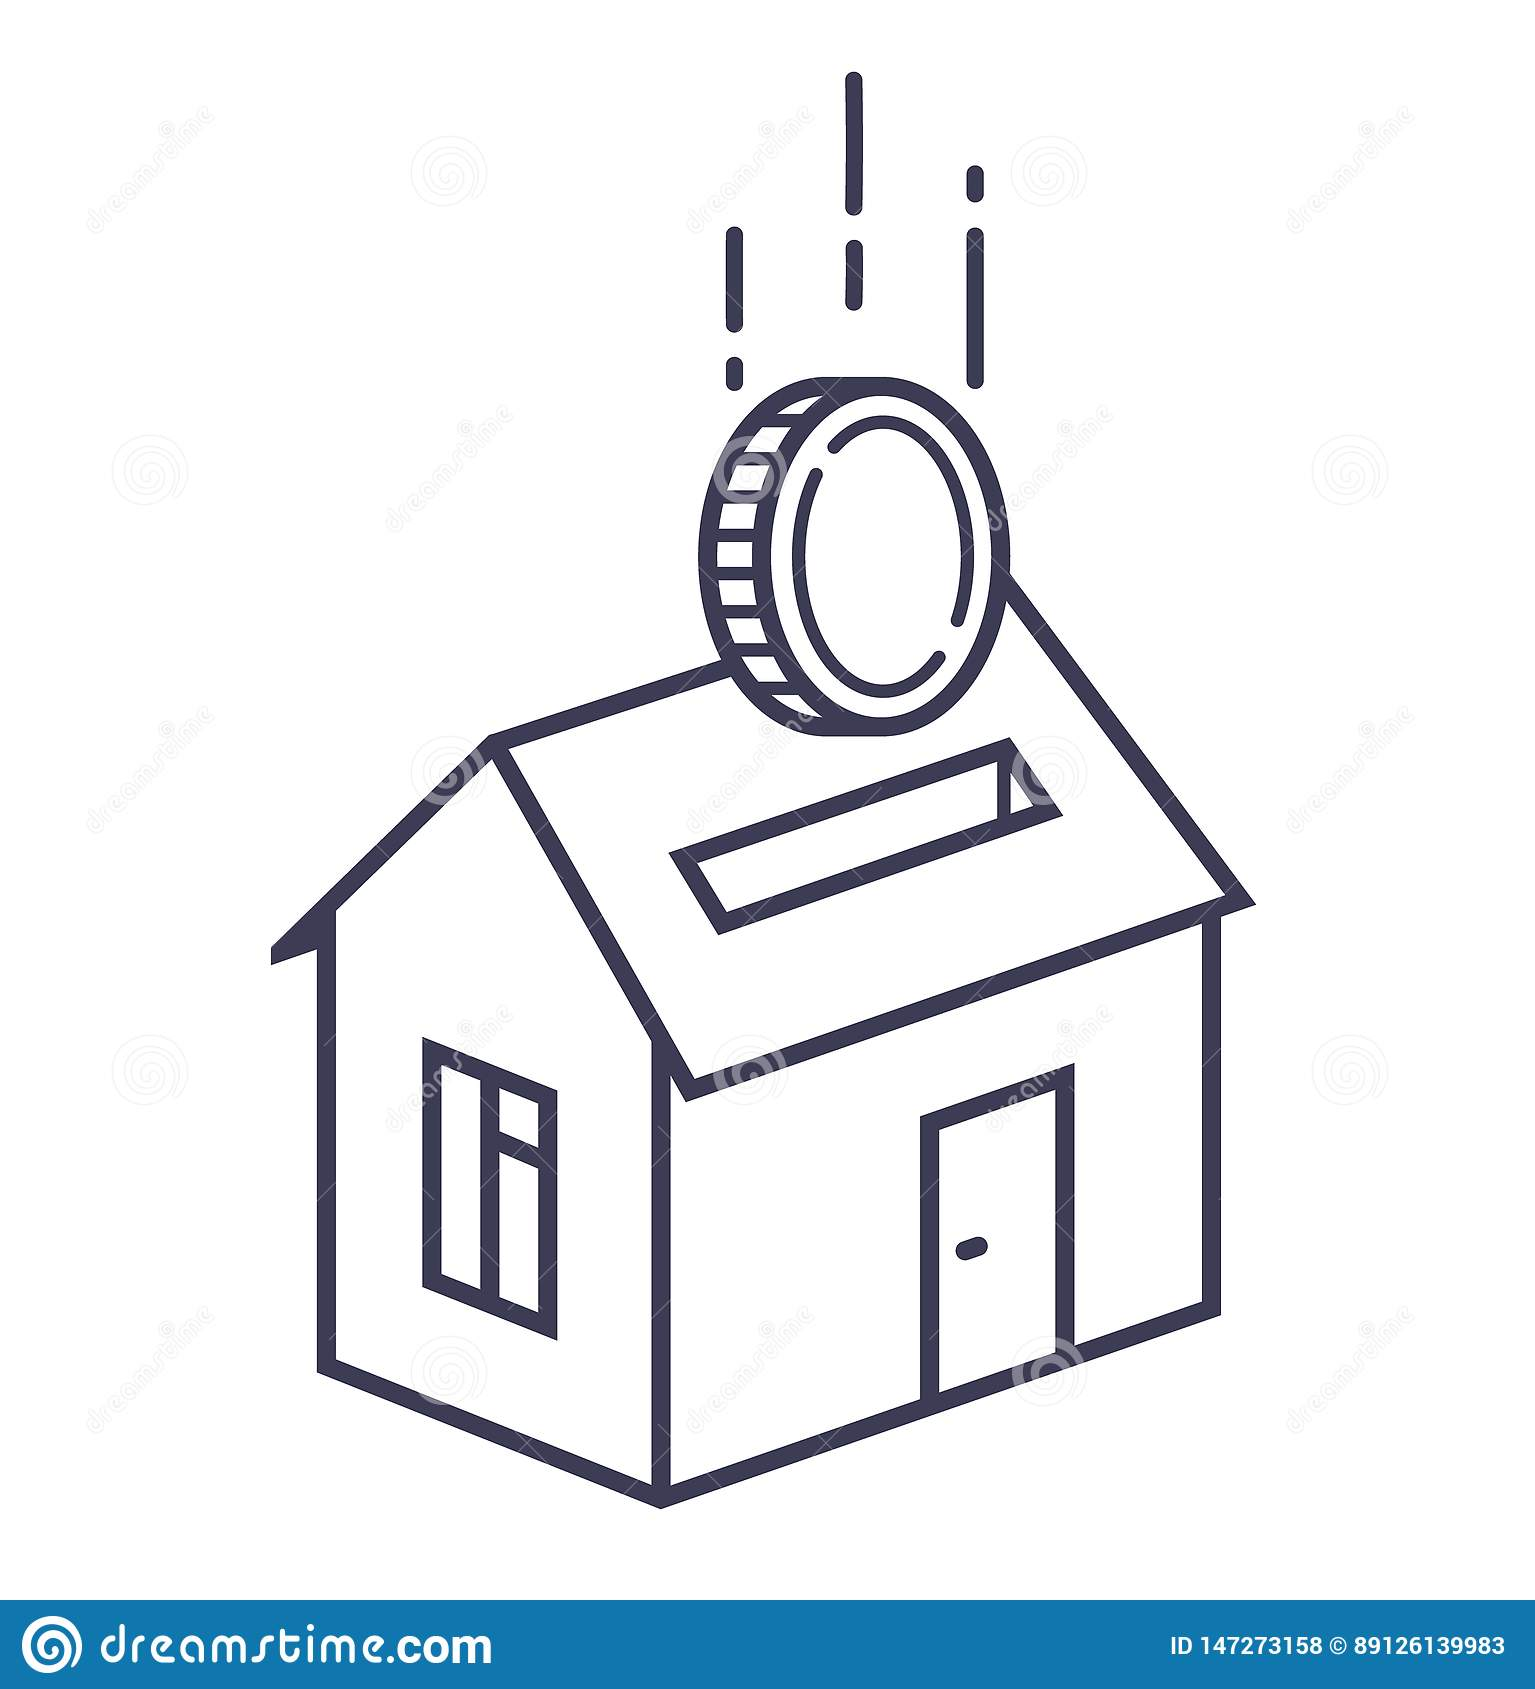 House icon with